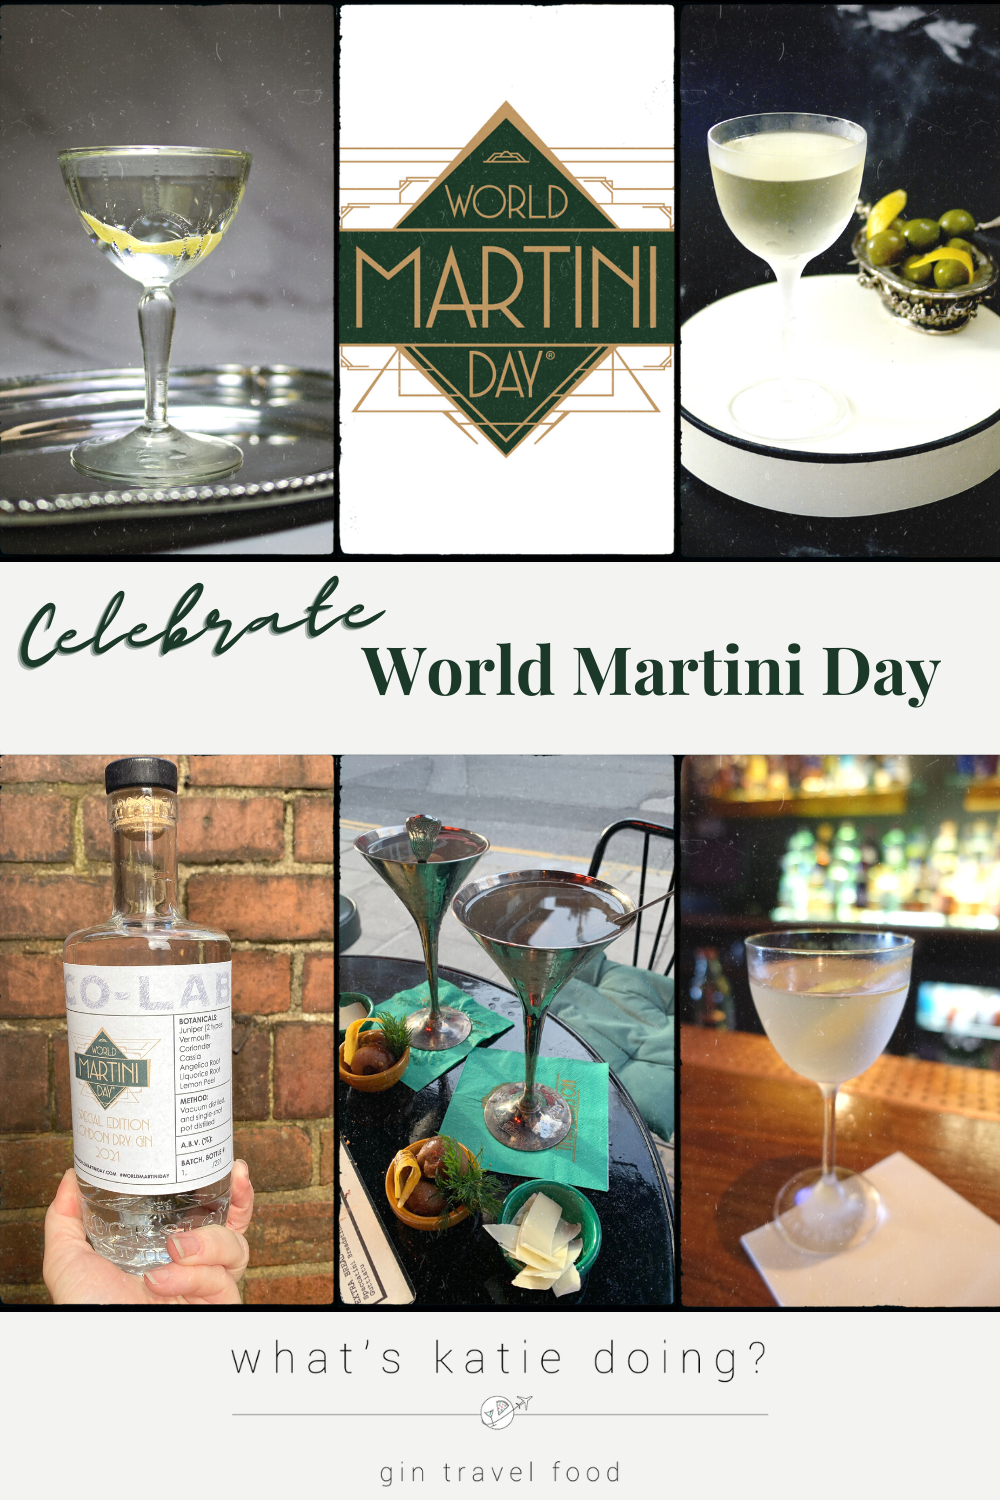 selection of 4 martini pictures, world martini day gin bottle and the world martini day logo